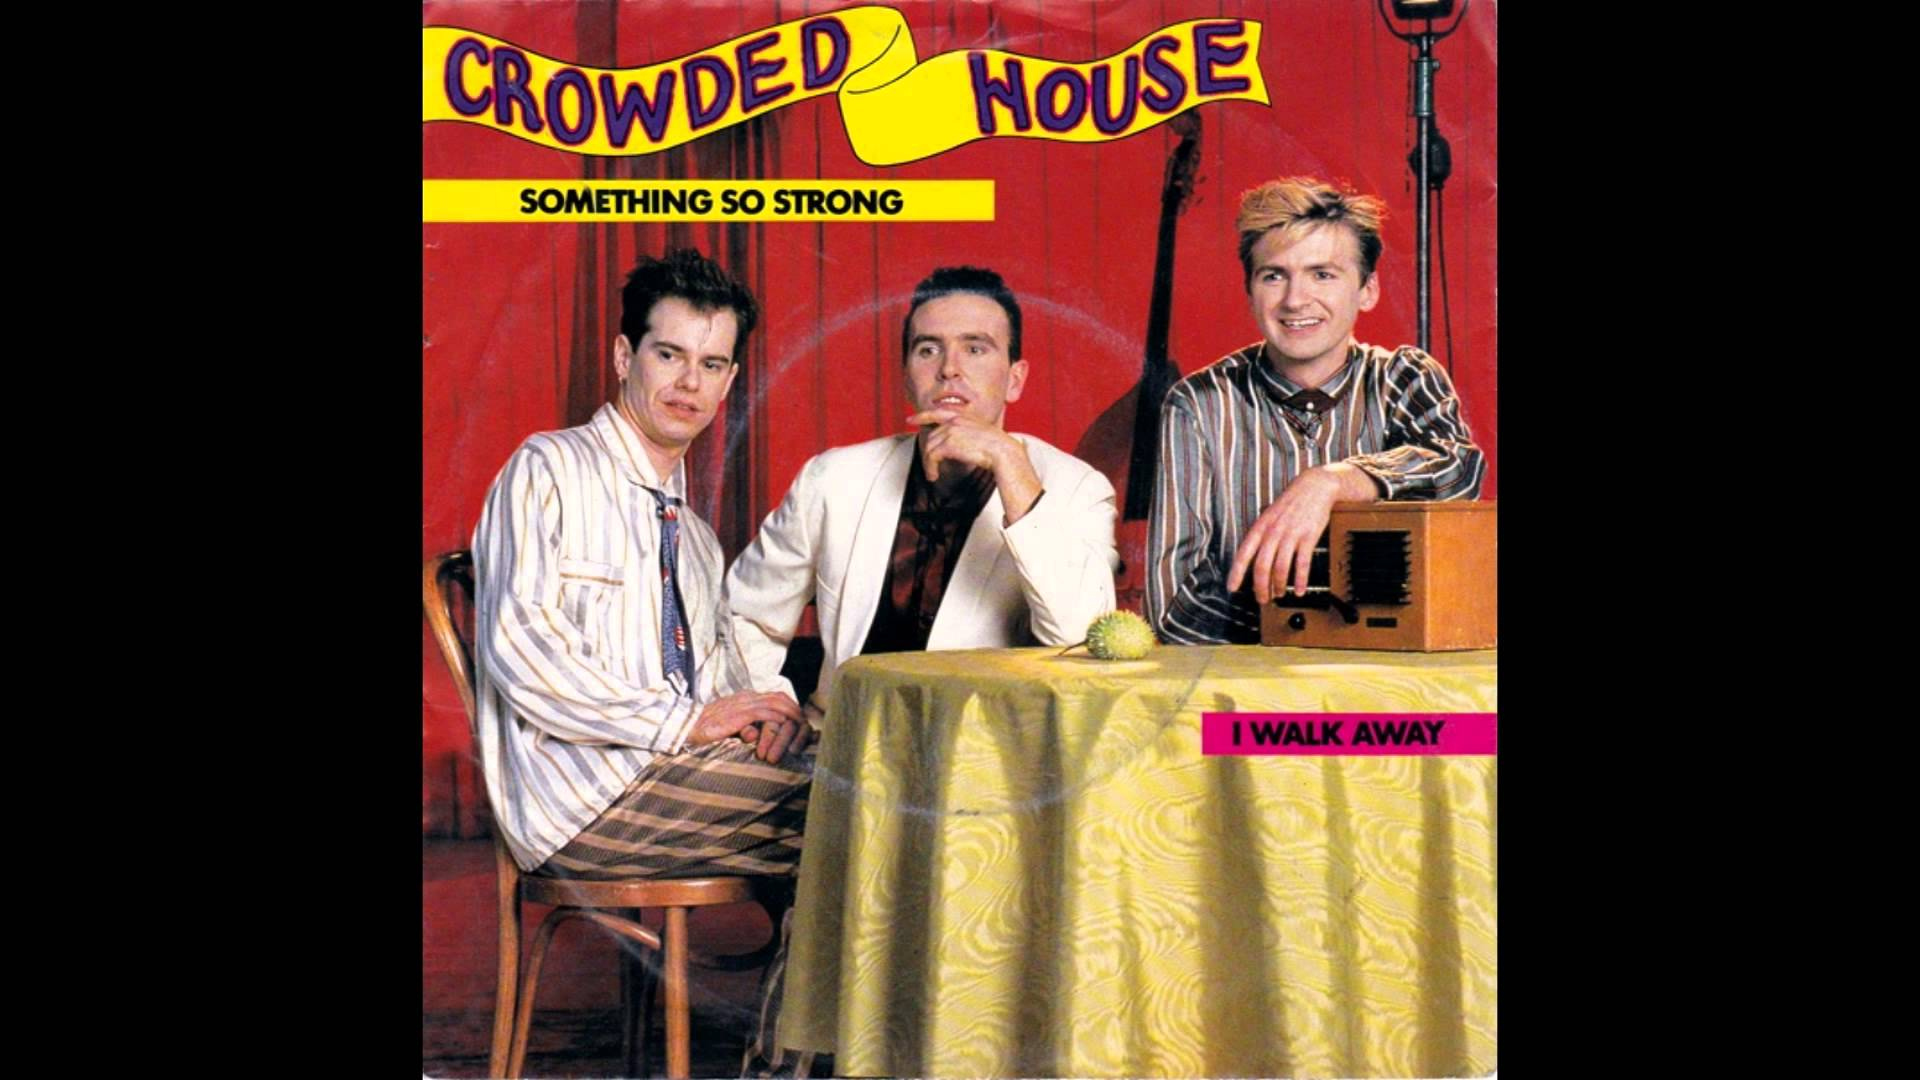 Sensational Crowded House Something So Strong Video 1987 Imdb Download Free Architecture Designs Terchretrmadebymaigaardcom